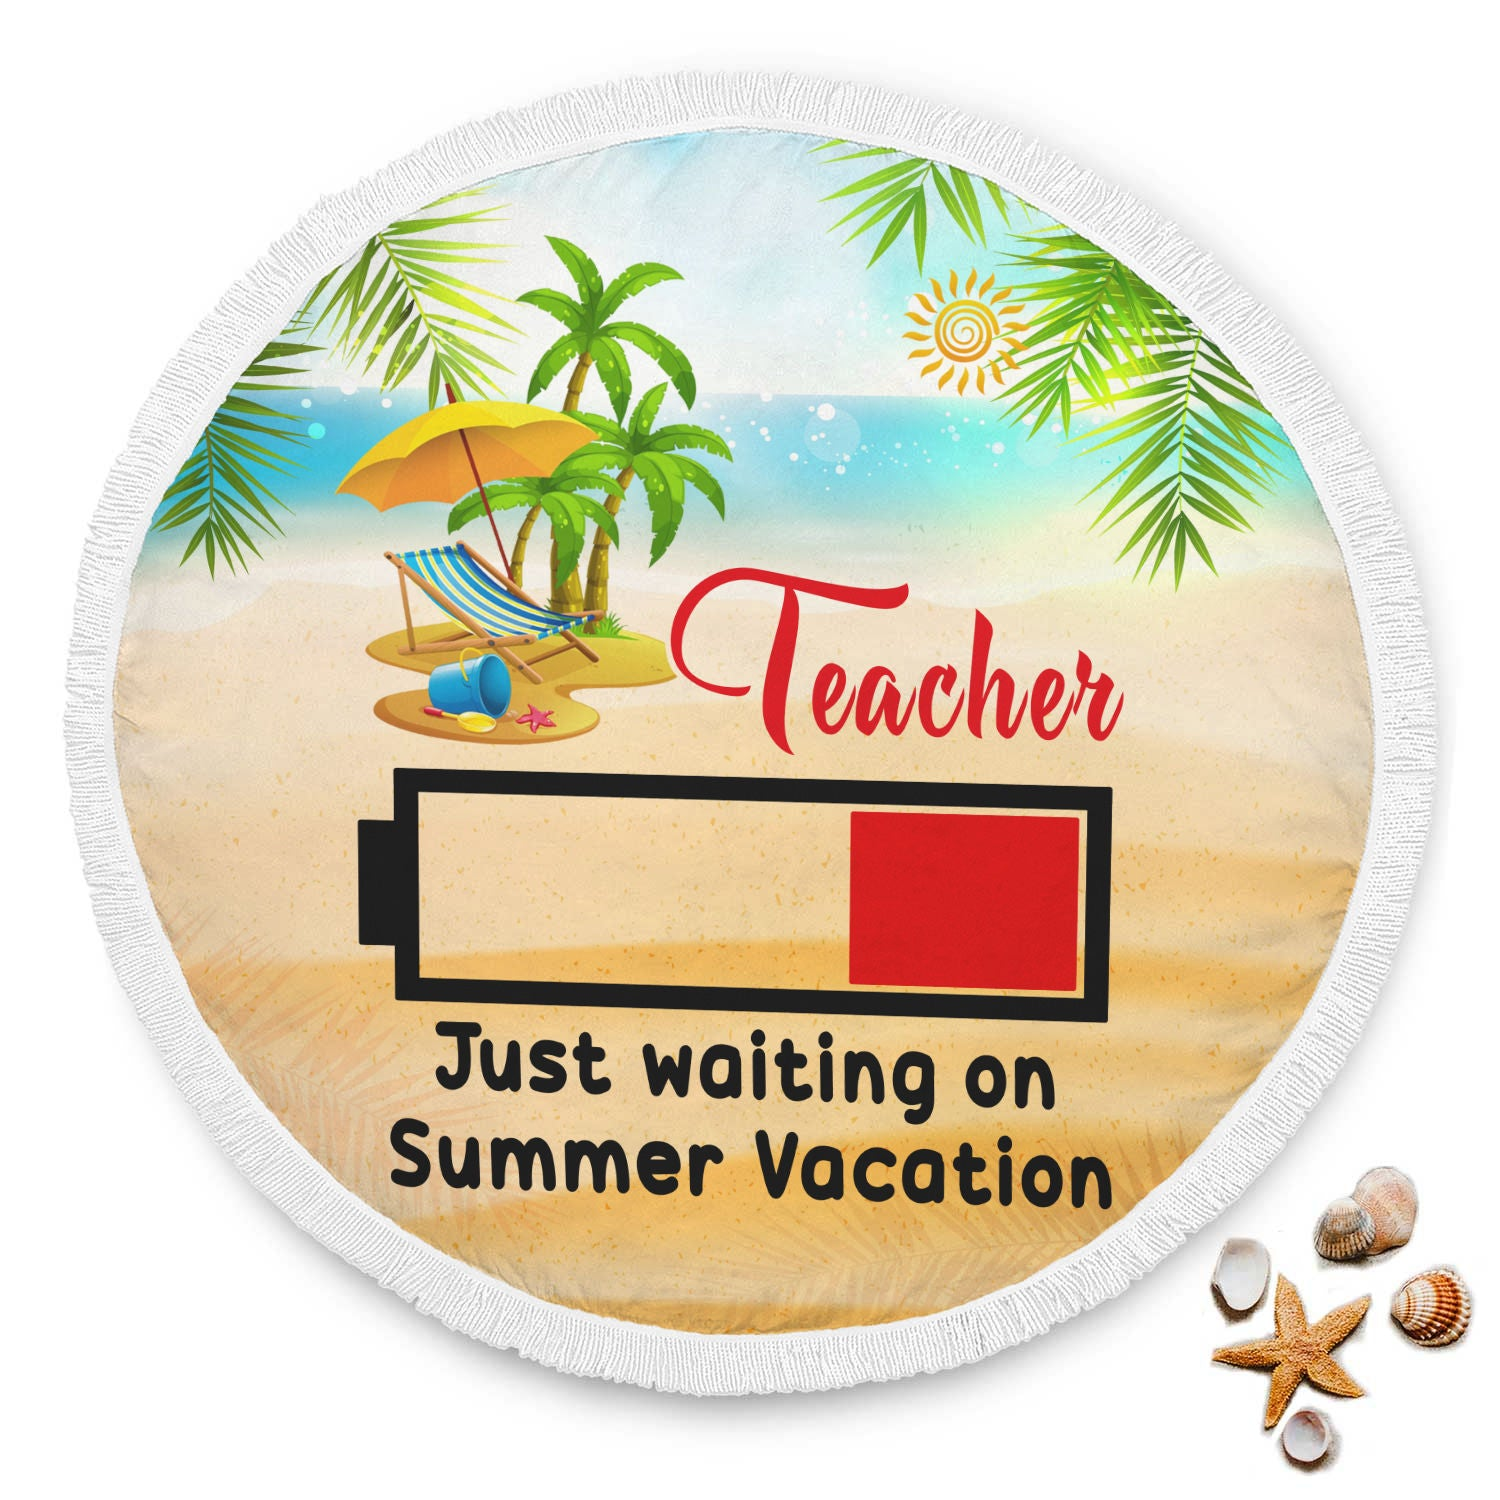 VIRA summer vacation beach blanket for awesome teachers